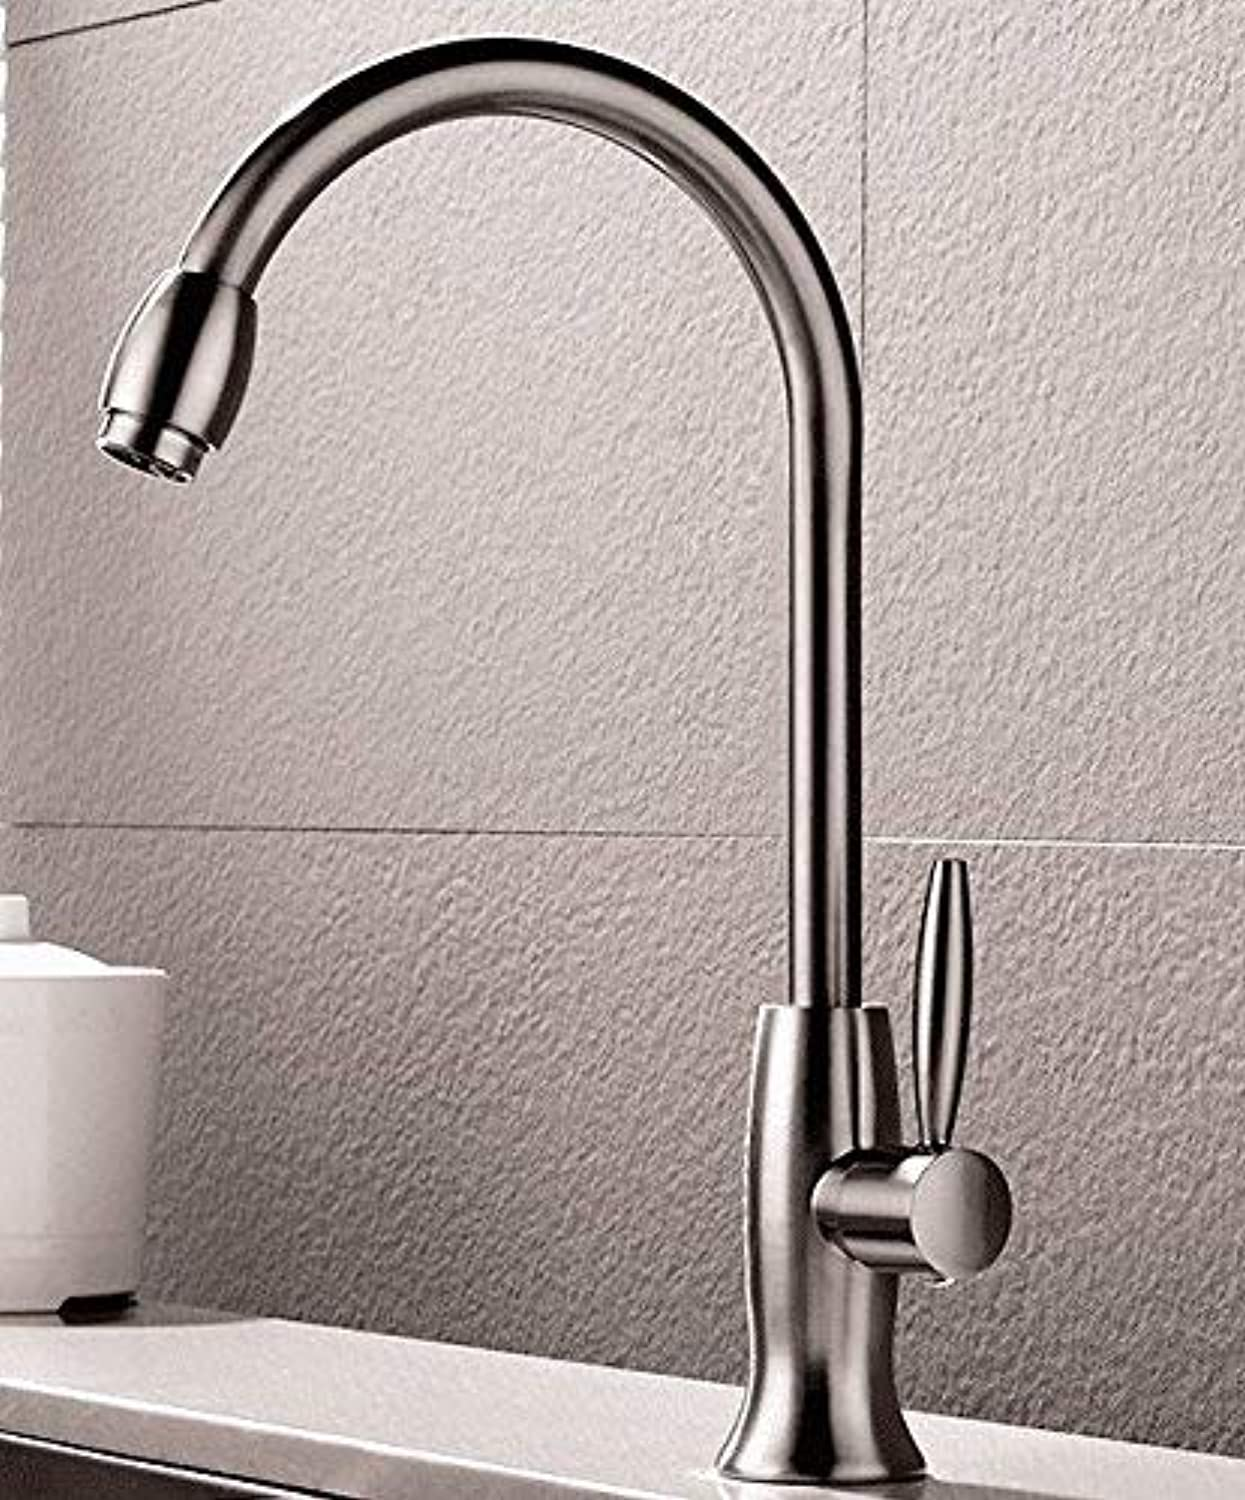 Oudan Sink Taps Single cold copper redating kitchen ceramics Single handle Single hole